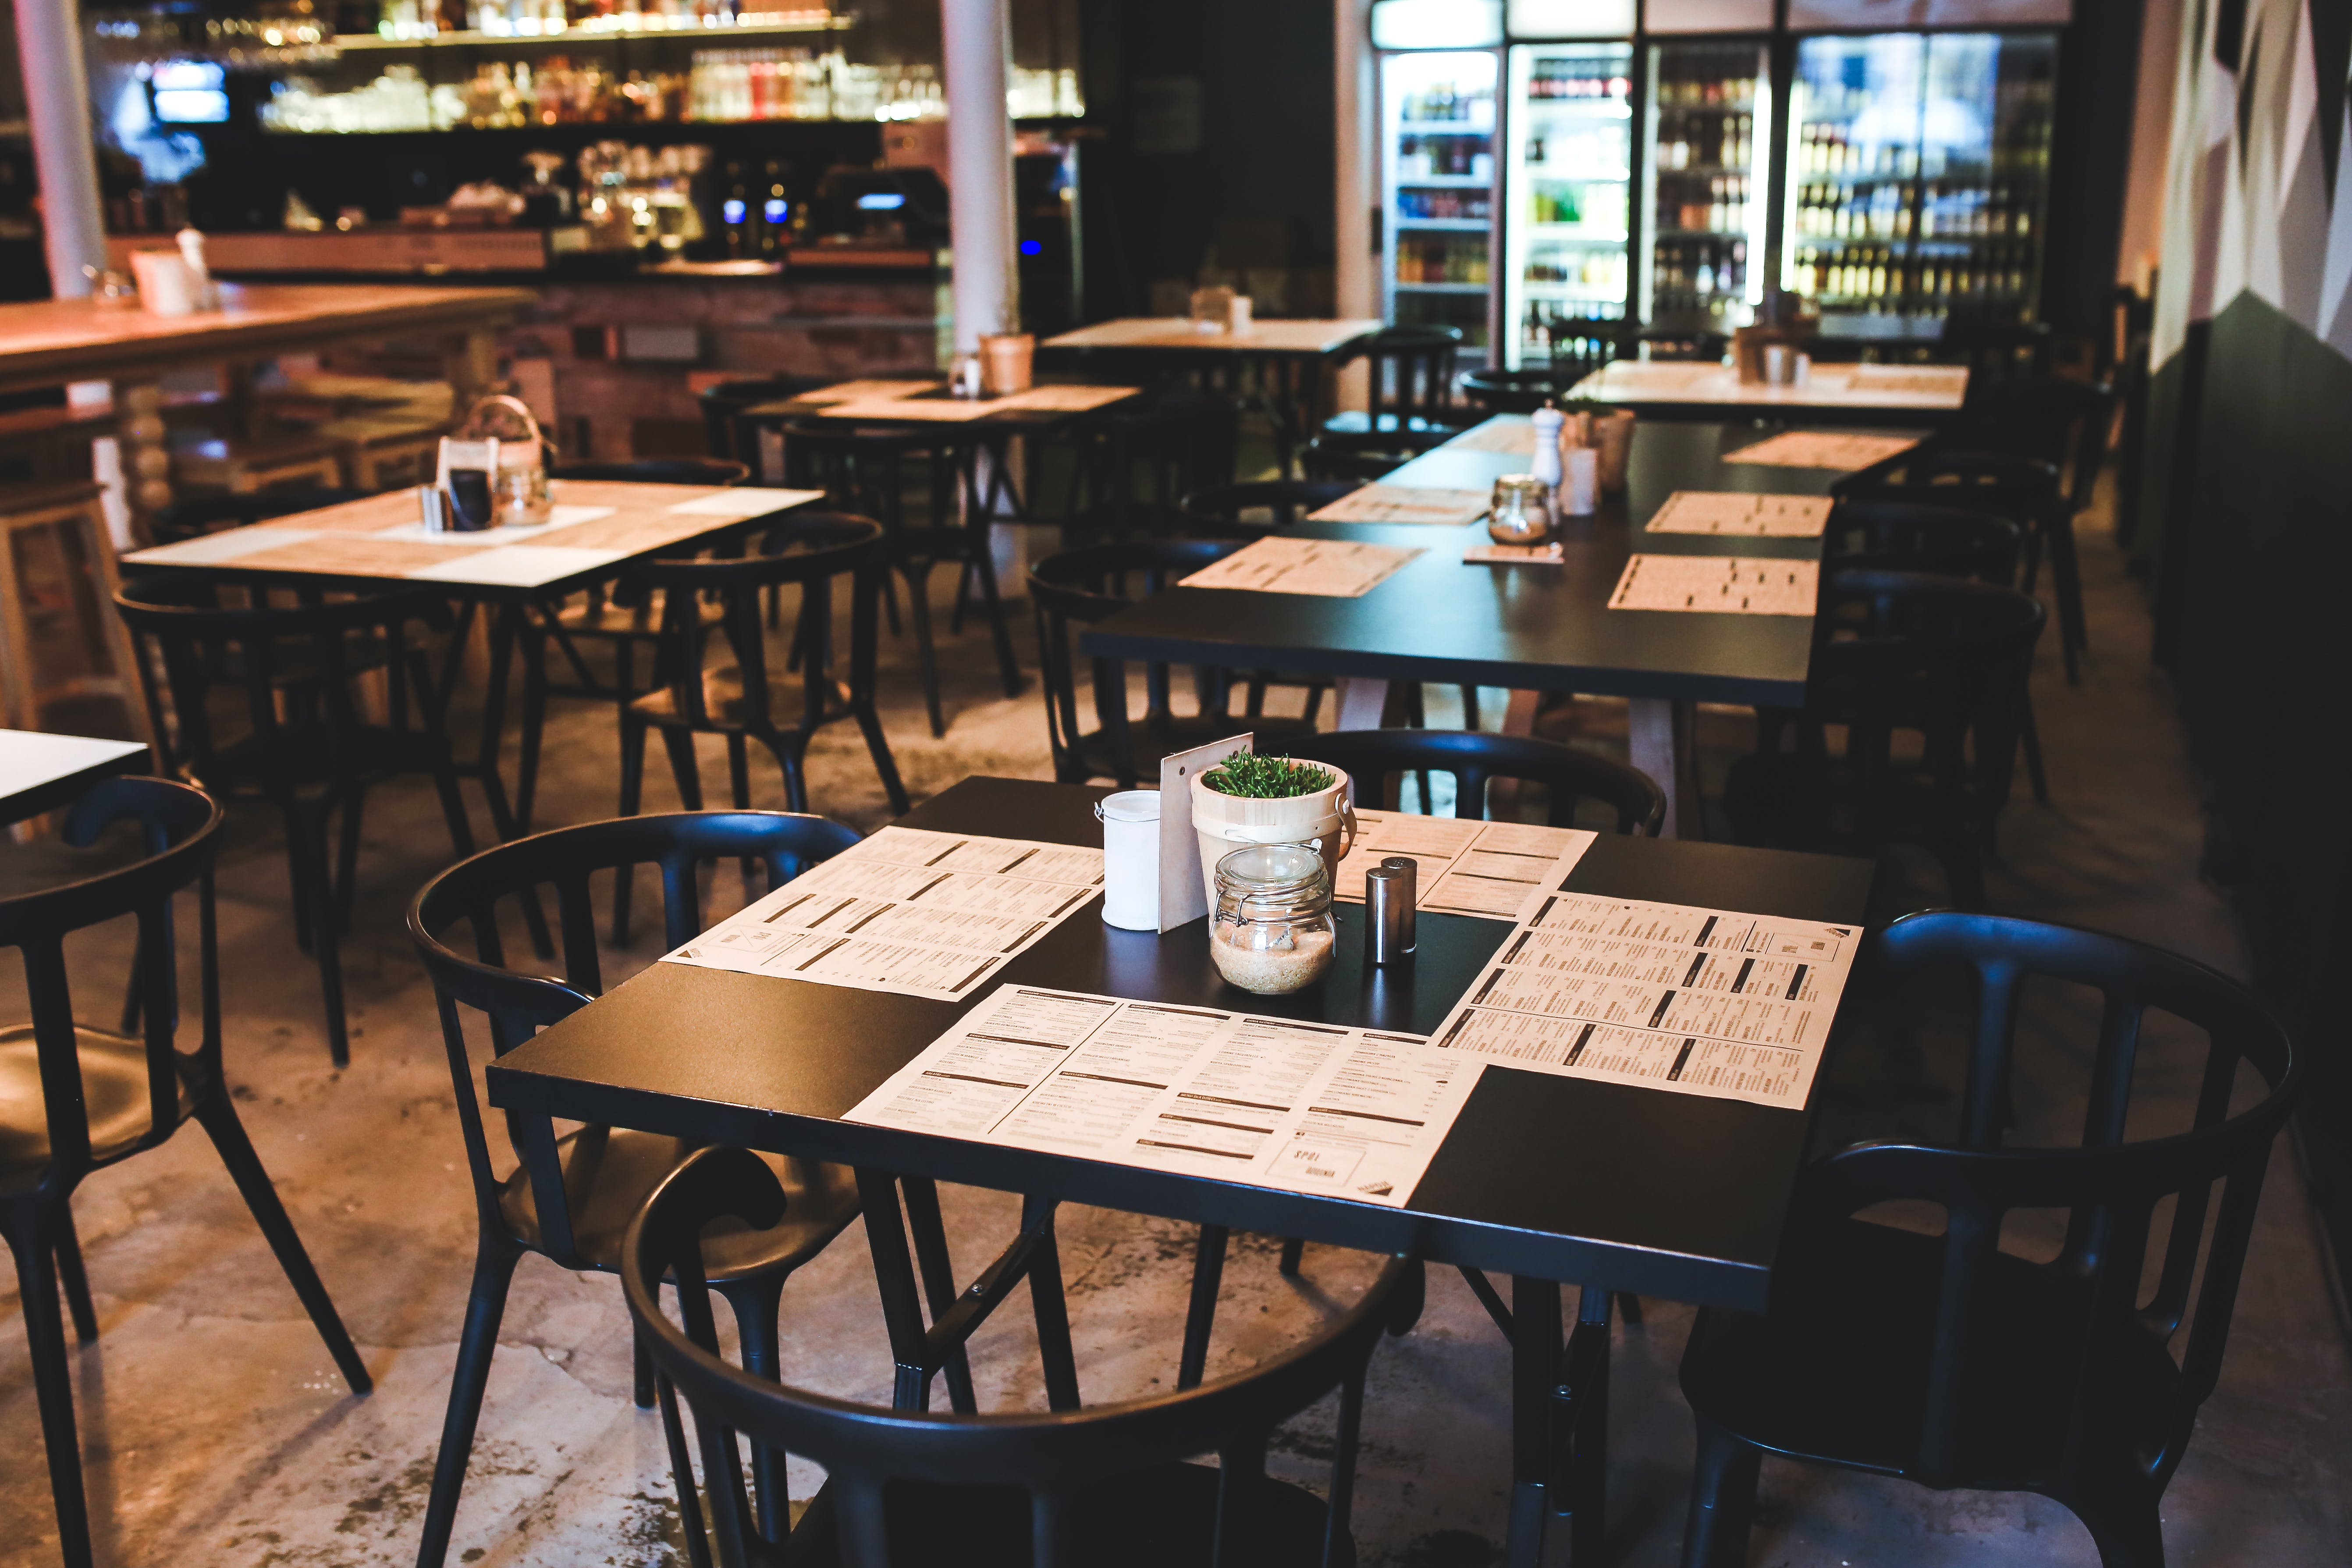 A vintage restaurant | Photo: Pexels